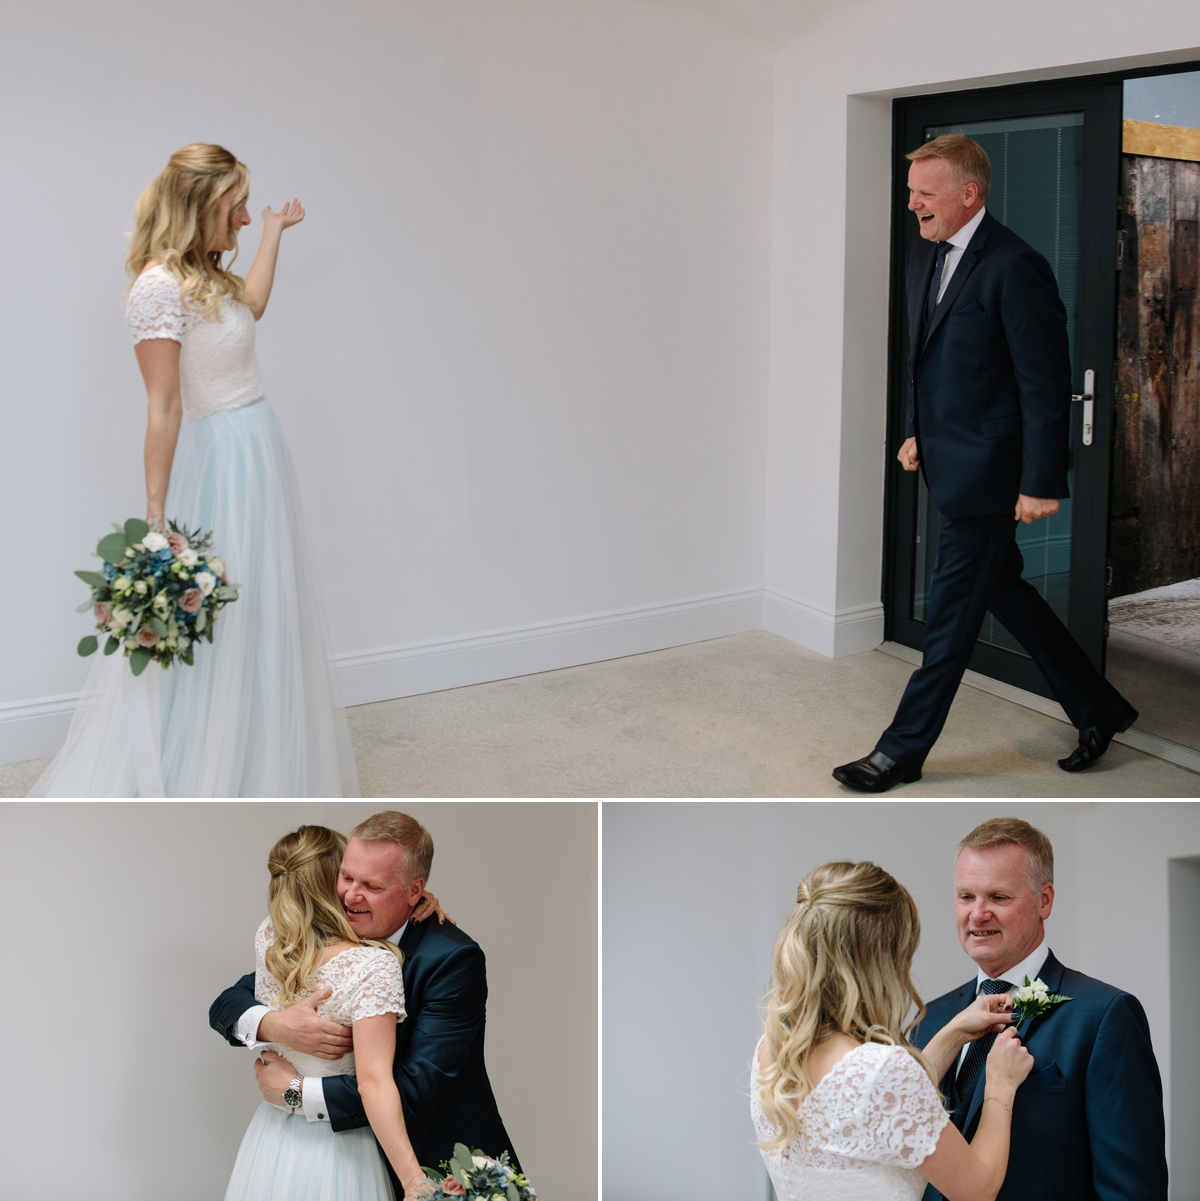 The first look when dad sees his daughter in her wedding dress